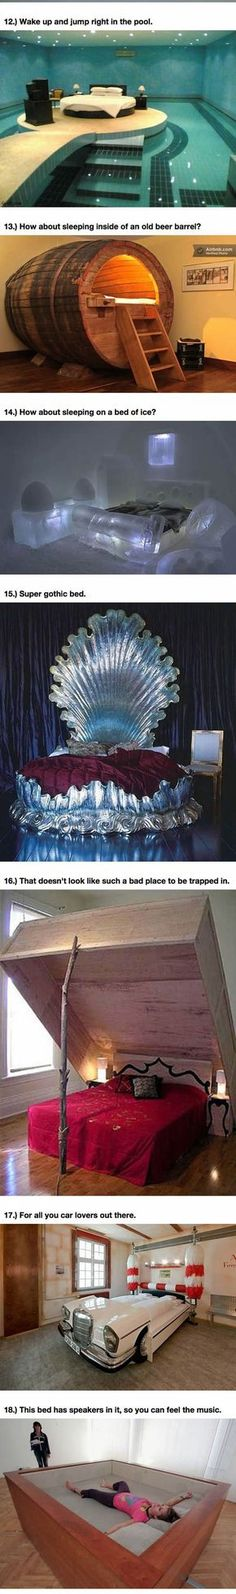 Funny pictures about 25 Amazing Beds Will Make You Wish It Was Nap Time. Oh, and cool pics about 25 Amazing Beds Will Make You Wish It Was Nap Time. Also, 25 Amazing Beds Will Make You Wish It Was Nap Time photos. Dream Rooms, Dream Bedroom, Pool Bedroom, Bedroom Bed, Bed Rooms, House Rooms, Awesome Bedrooms, Cool Rooms, Cool Inventions